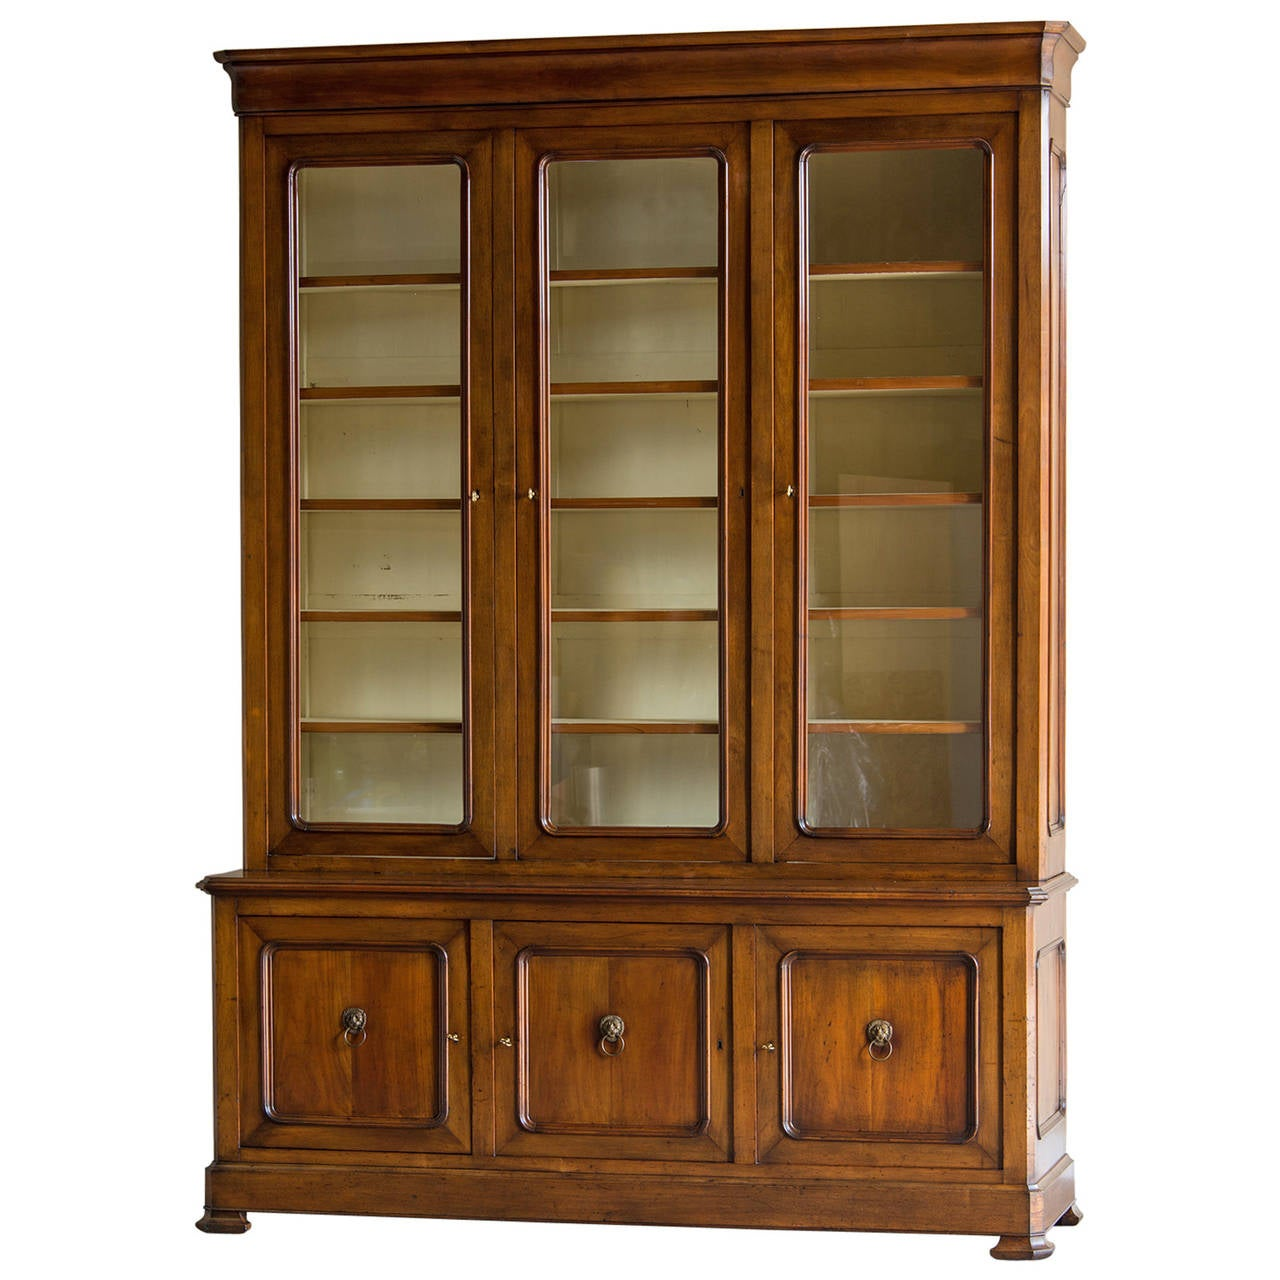 Louis Philippe Open Bookcase: Louis Philippe Cherrywood Bookcase Or Bibliothèque, France